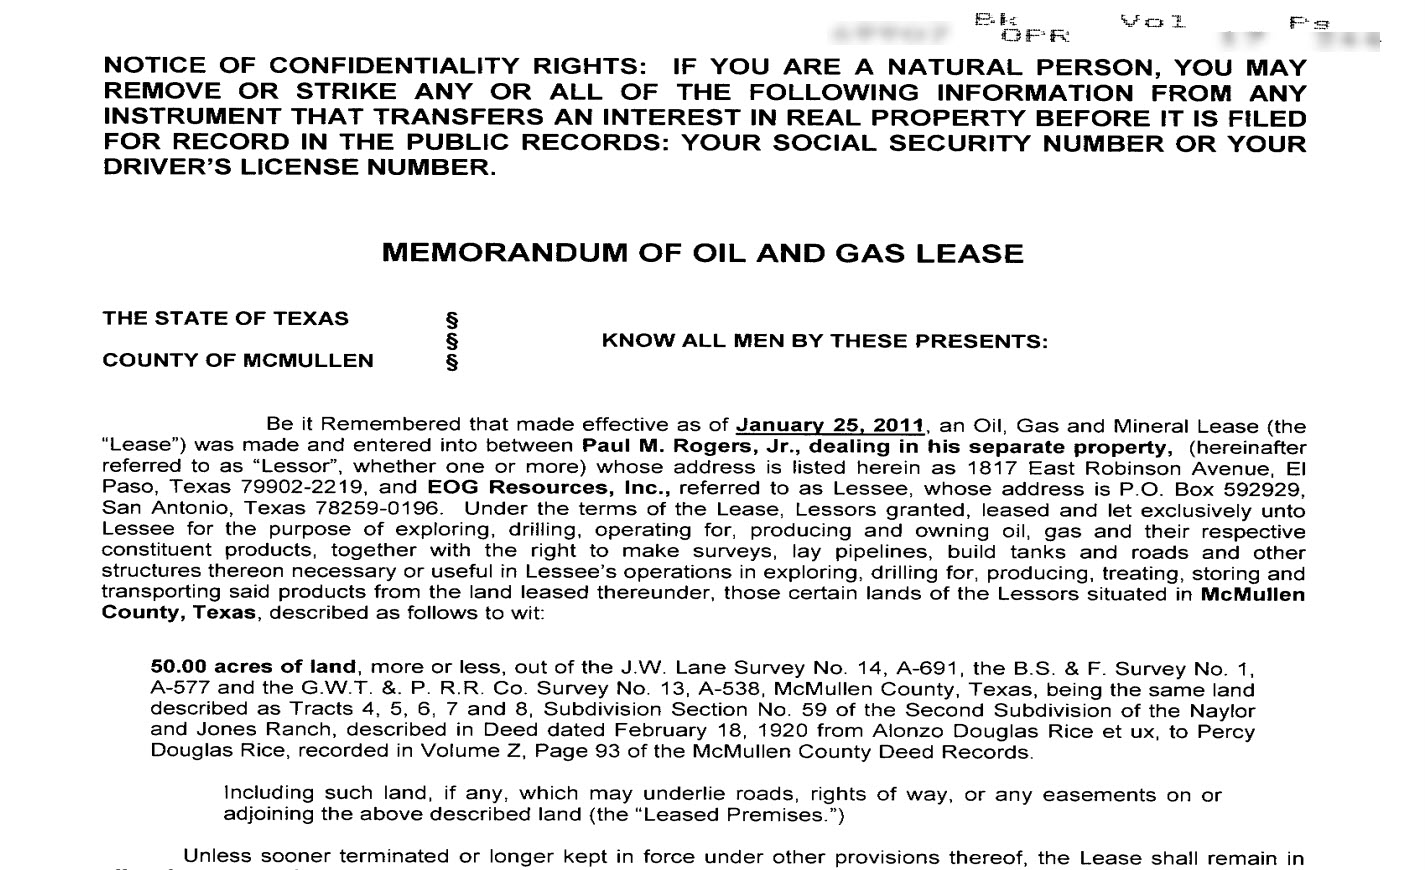 Memorandum of Oil and Gas Mineral Lease that could be produced in eQuisition